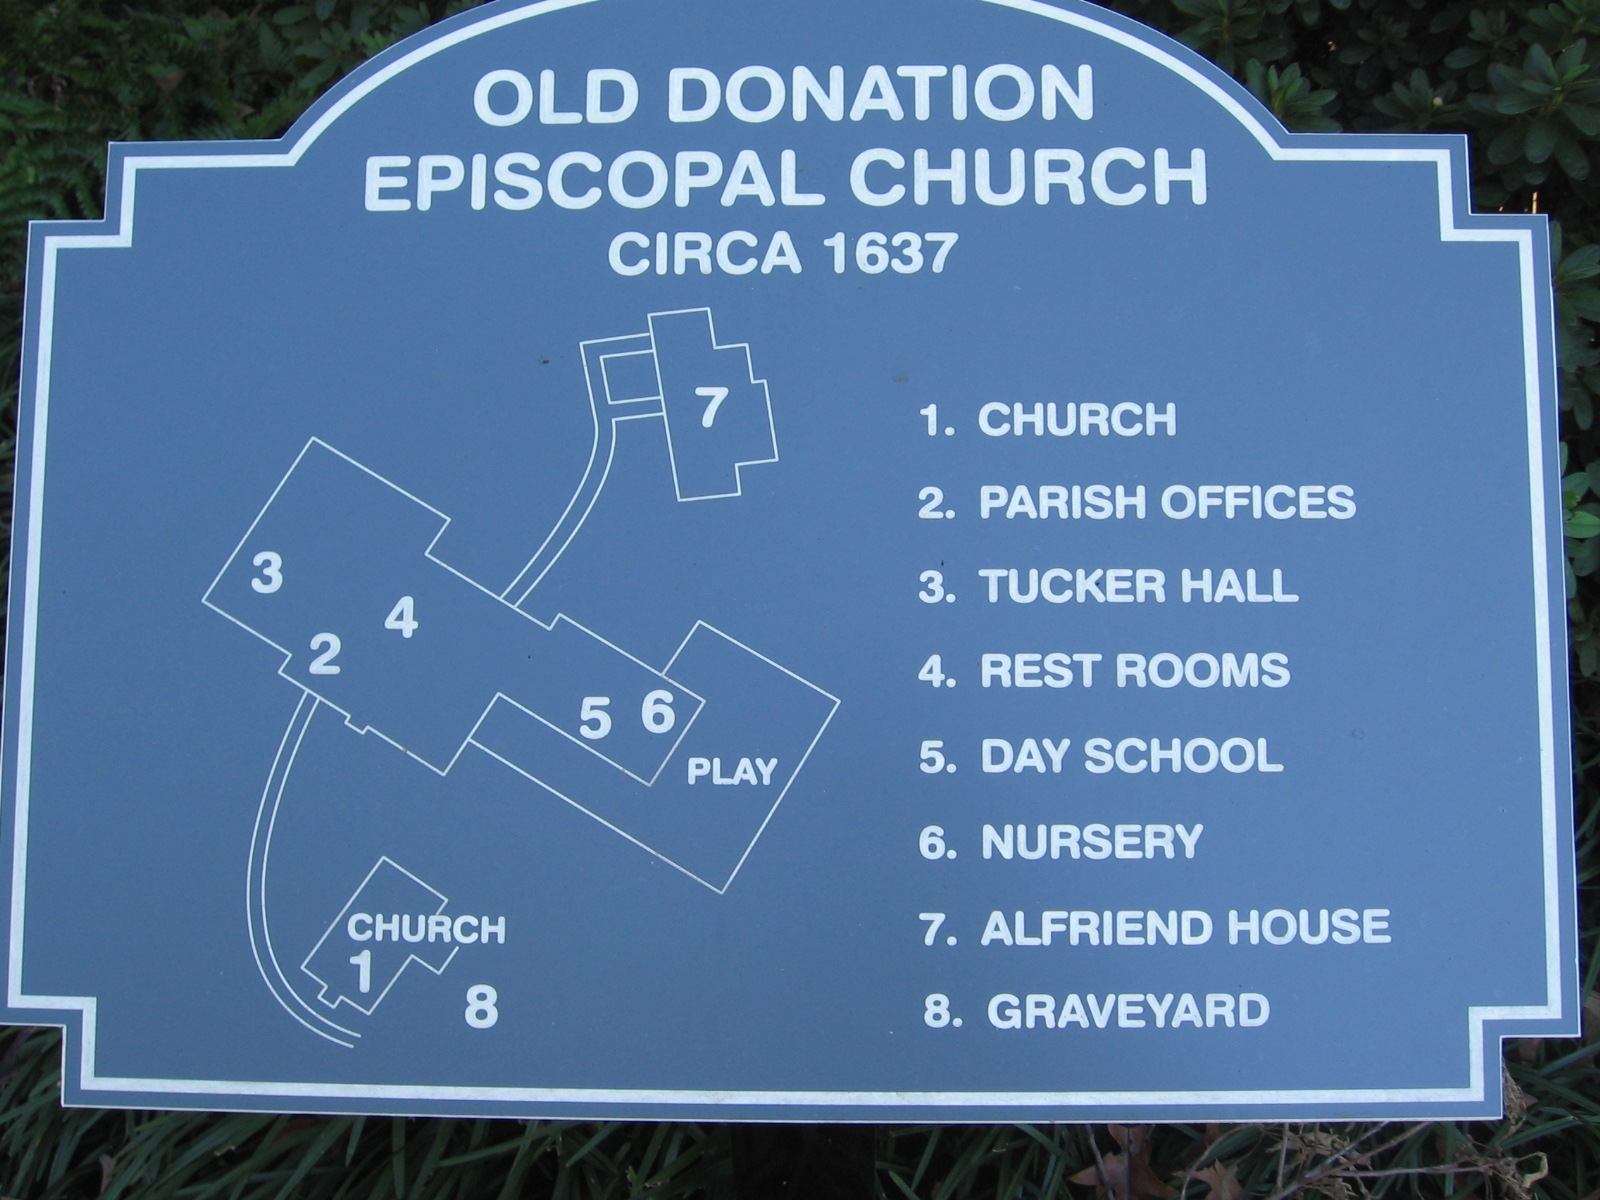 Old Donation Church: Donation History